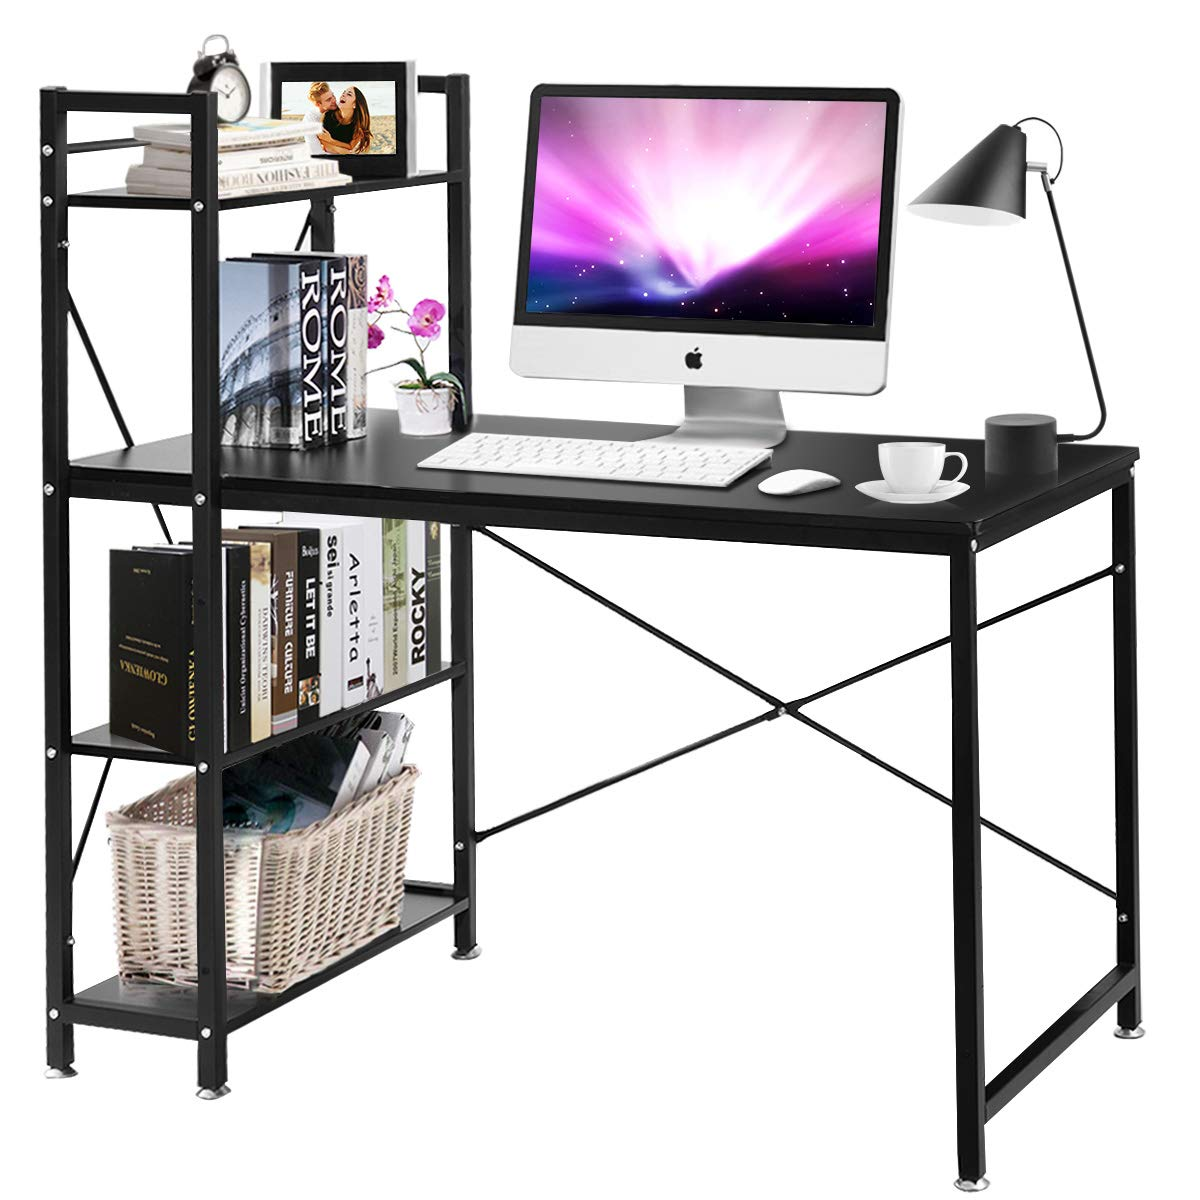 Tangkula 47.5 Computer Desk, Modern Style Writing Study Table with 4 Tier Bookshelves, Home Office Desk, Compact Gaming Desk, Multipurpose PC Workstation Black